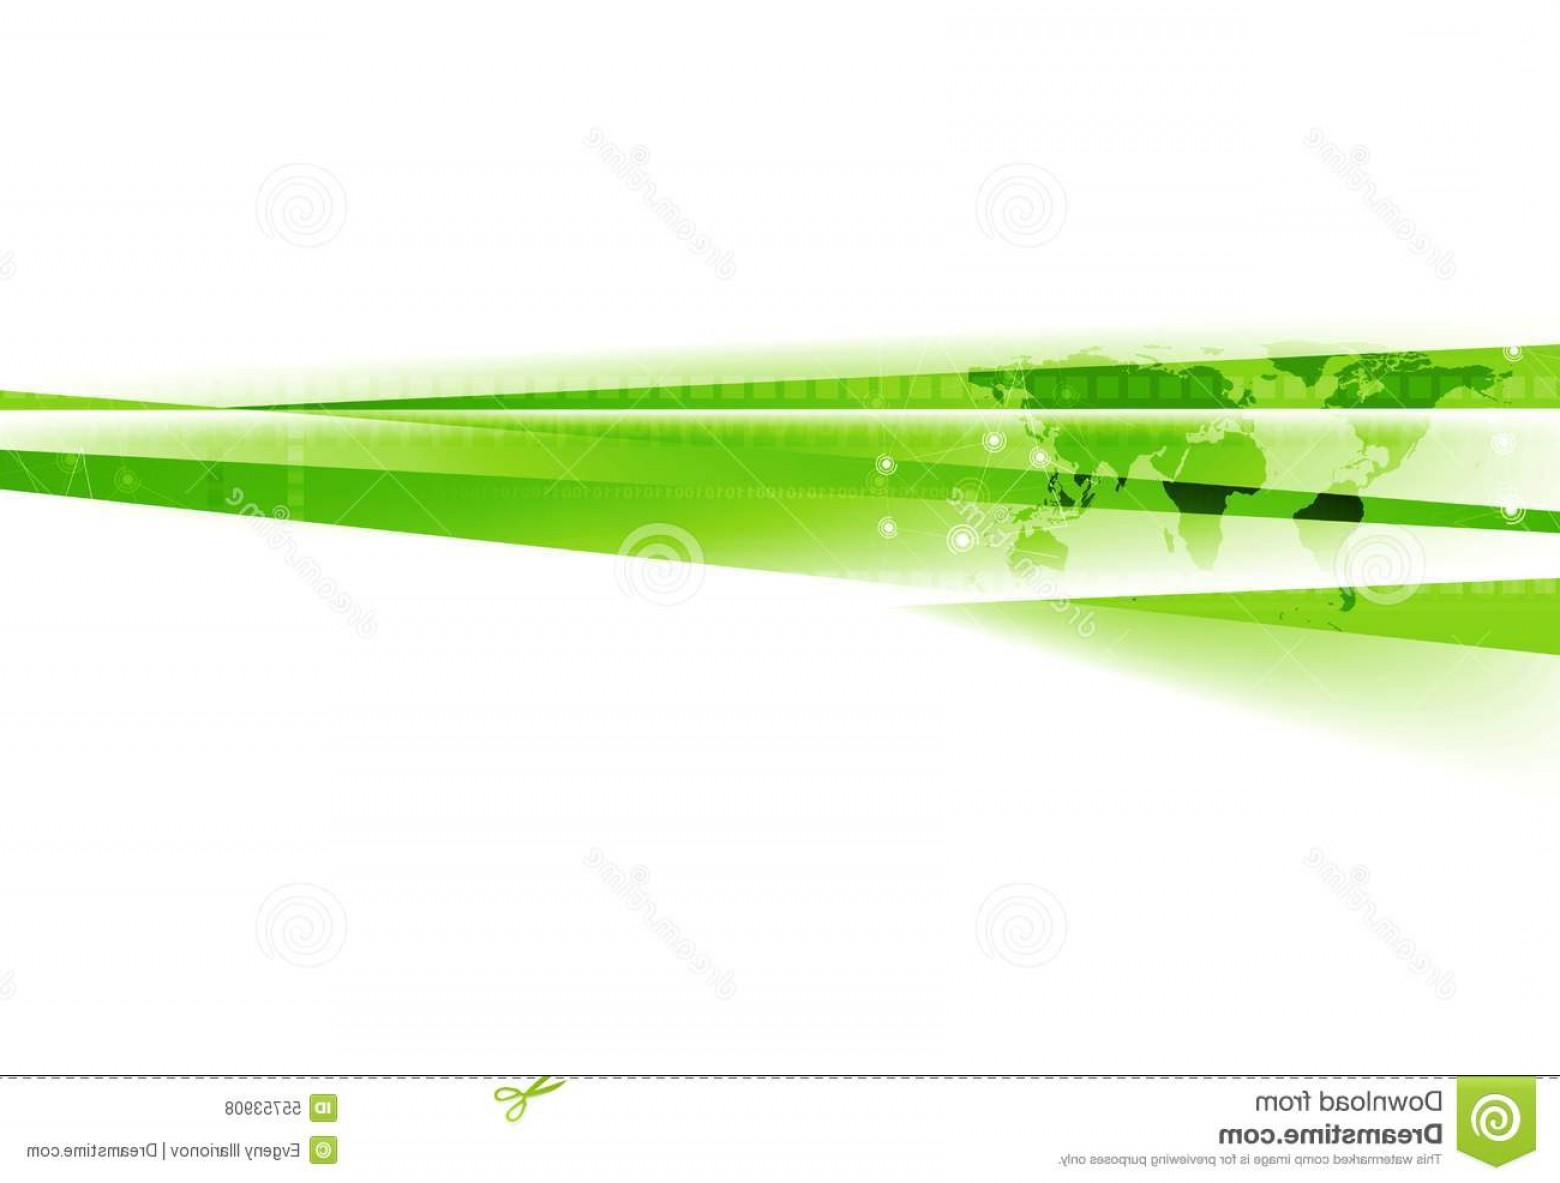 Green And White Vector: Stock Illustration Abstract Green White Tech Corporate Background Vector Design Image